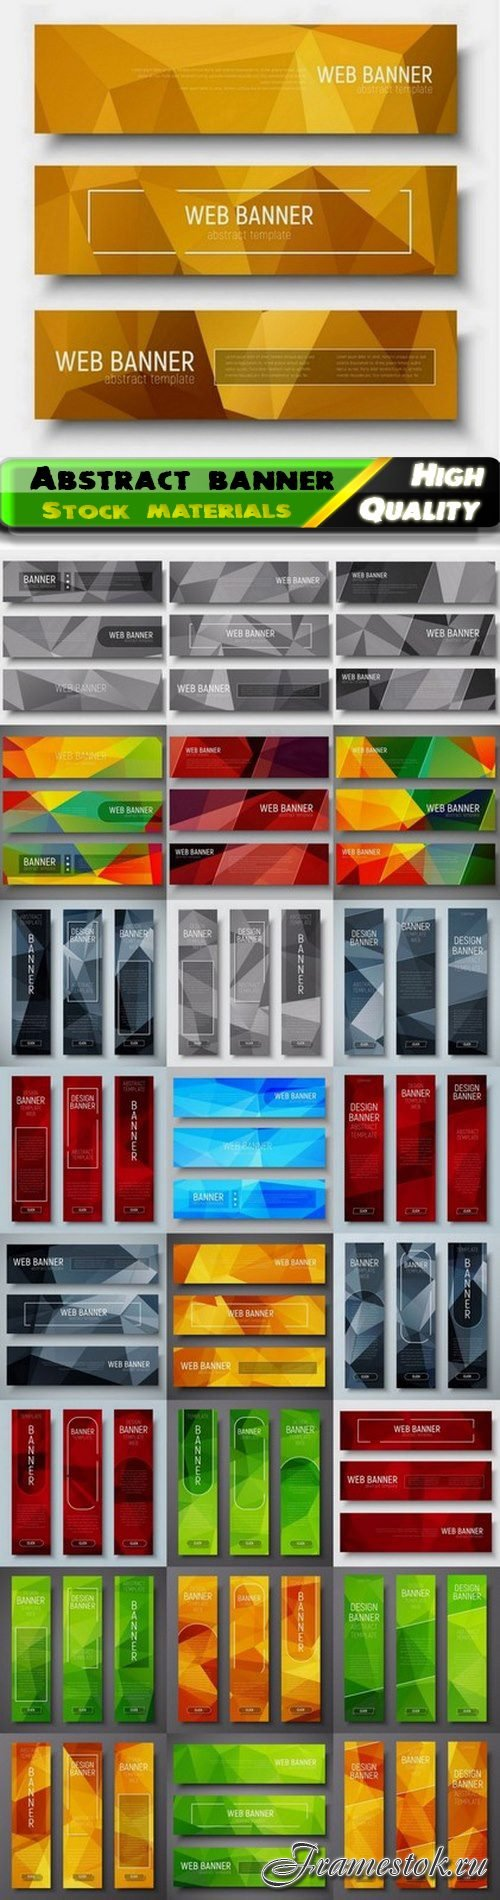 Abstract advertising banner and web header 25 Eps